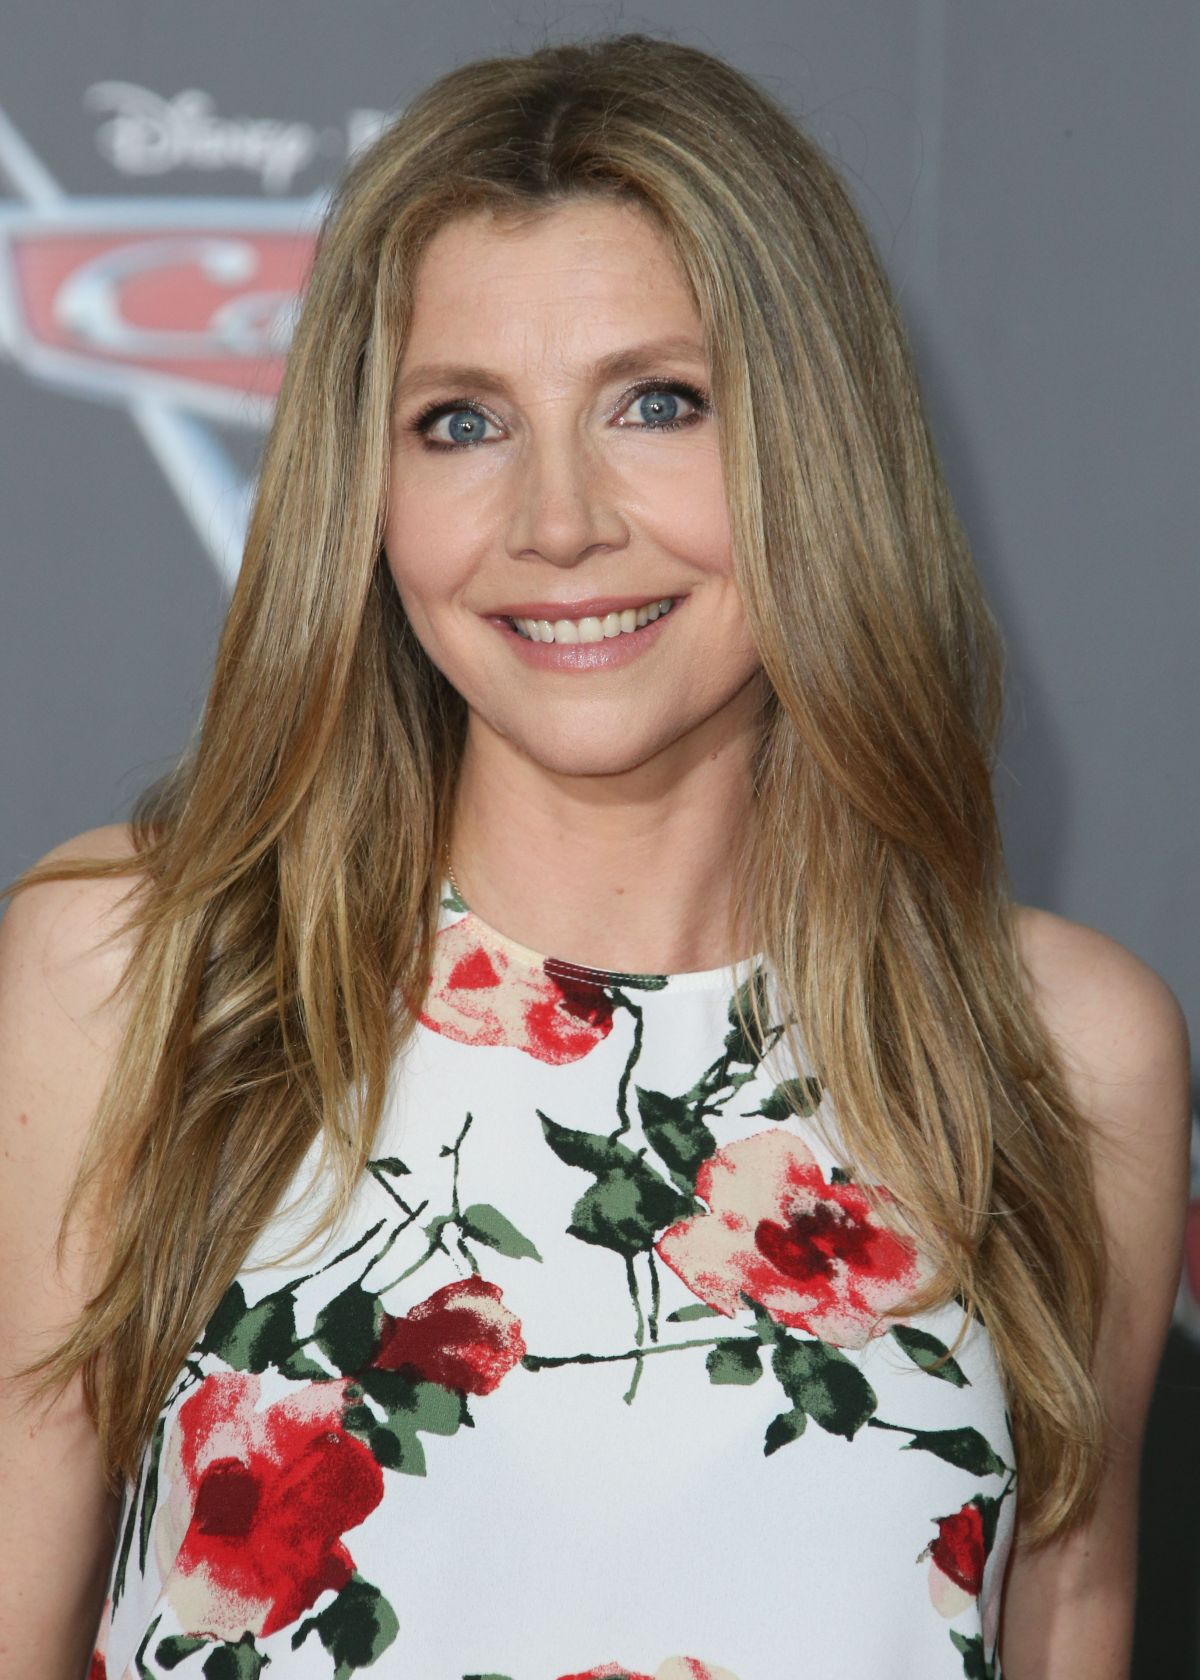 SARAH CHALKE at Cars 3 Premiere in Anaheim 06/10/2017